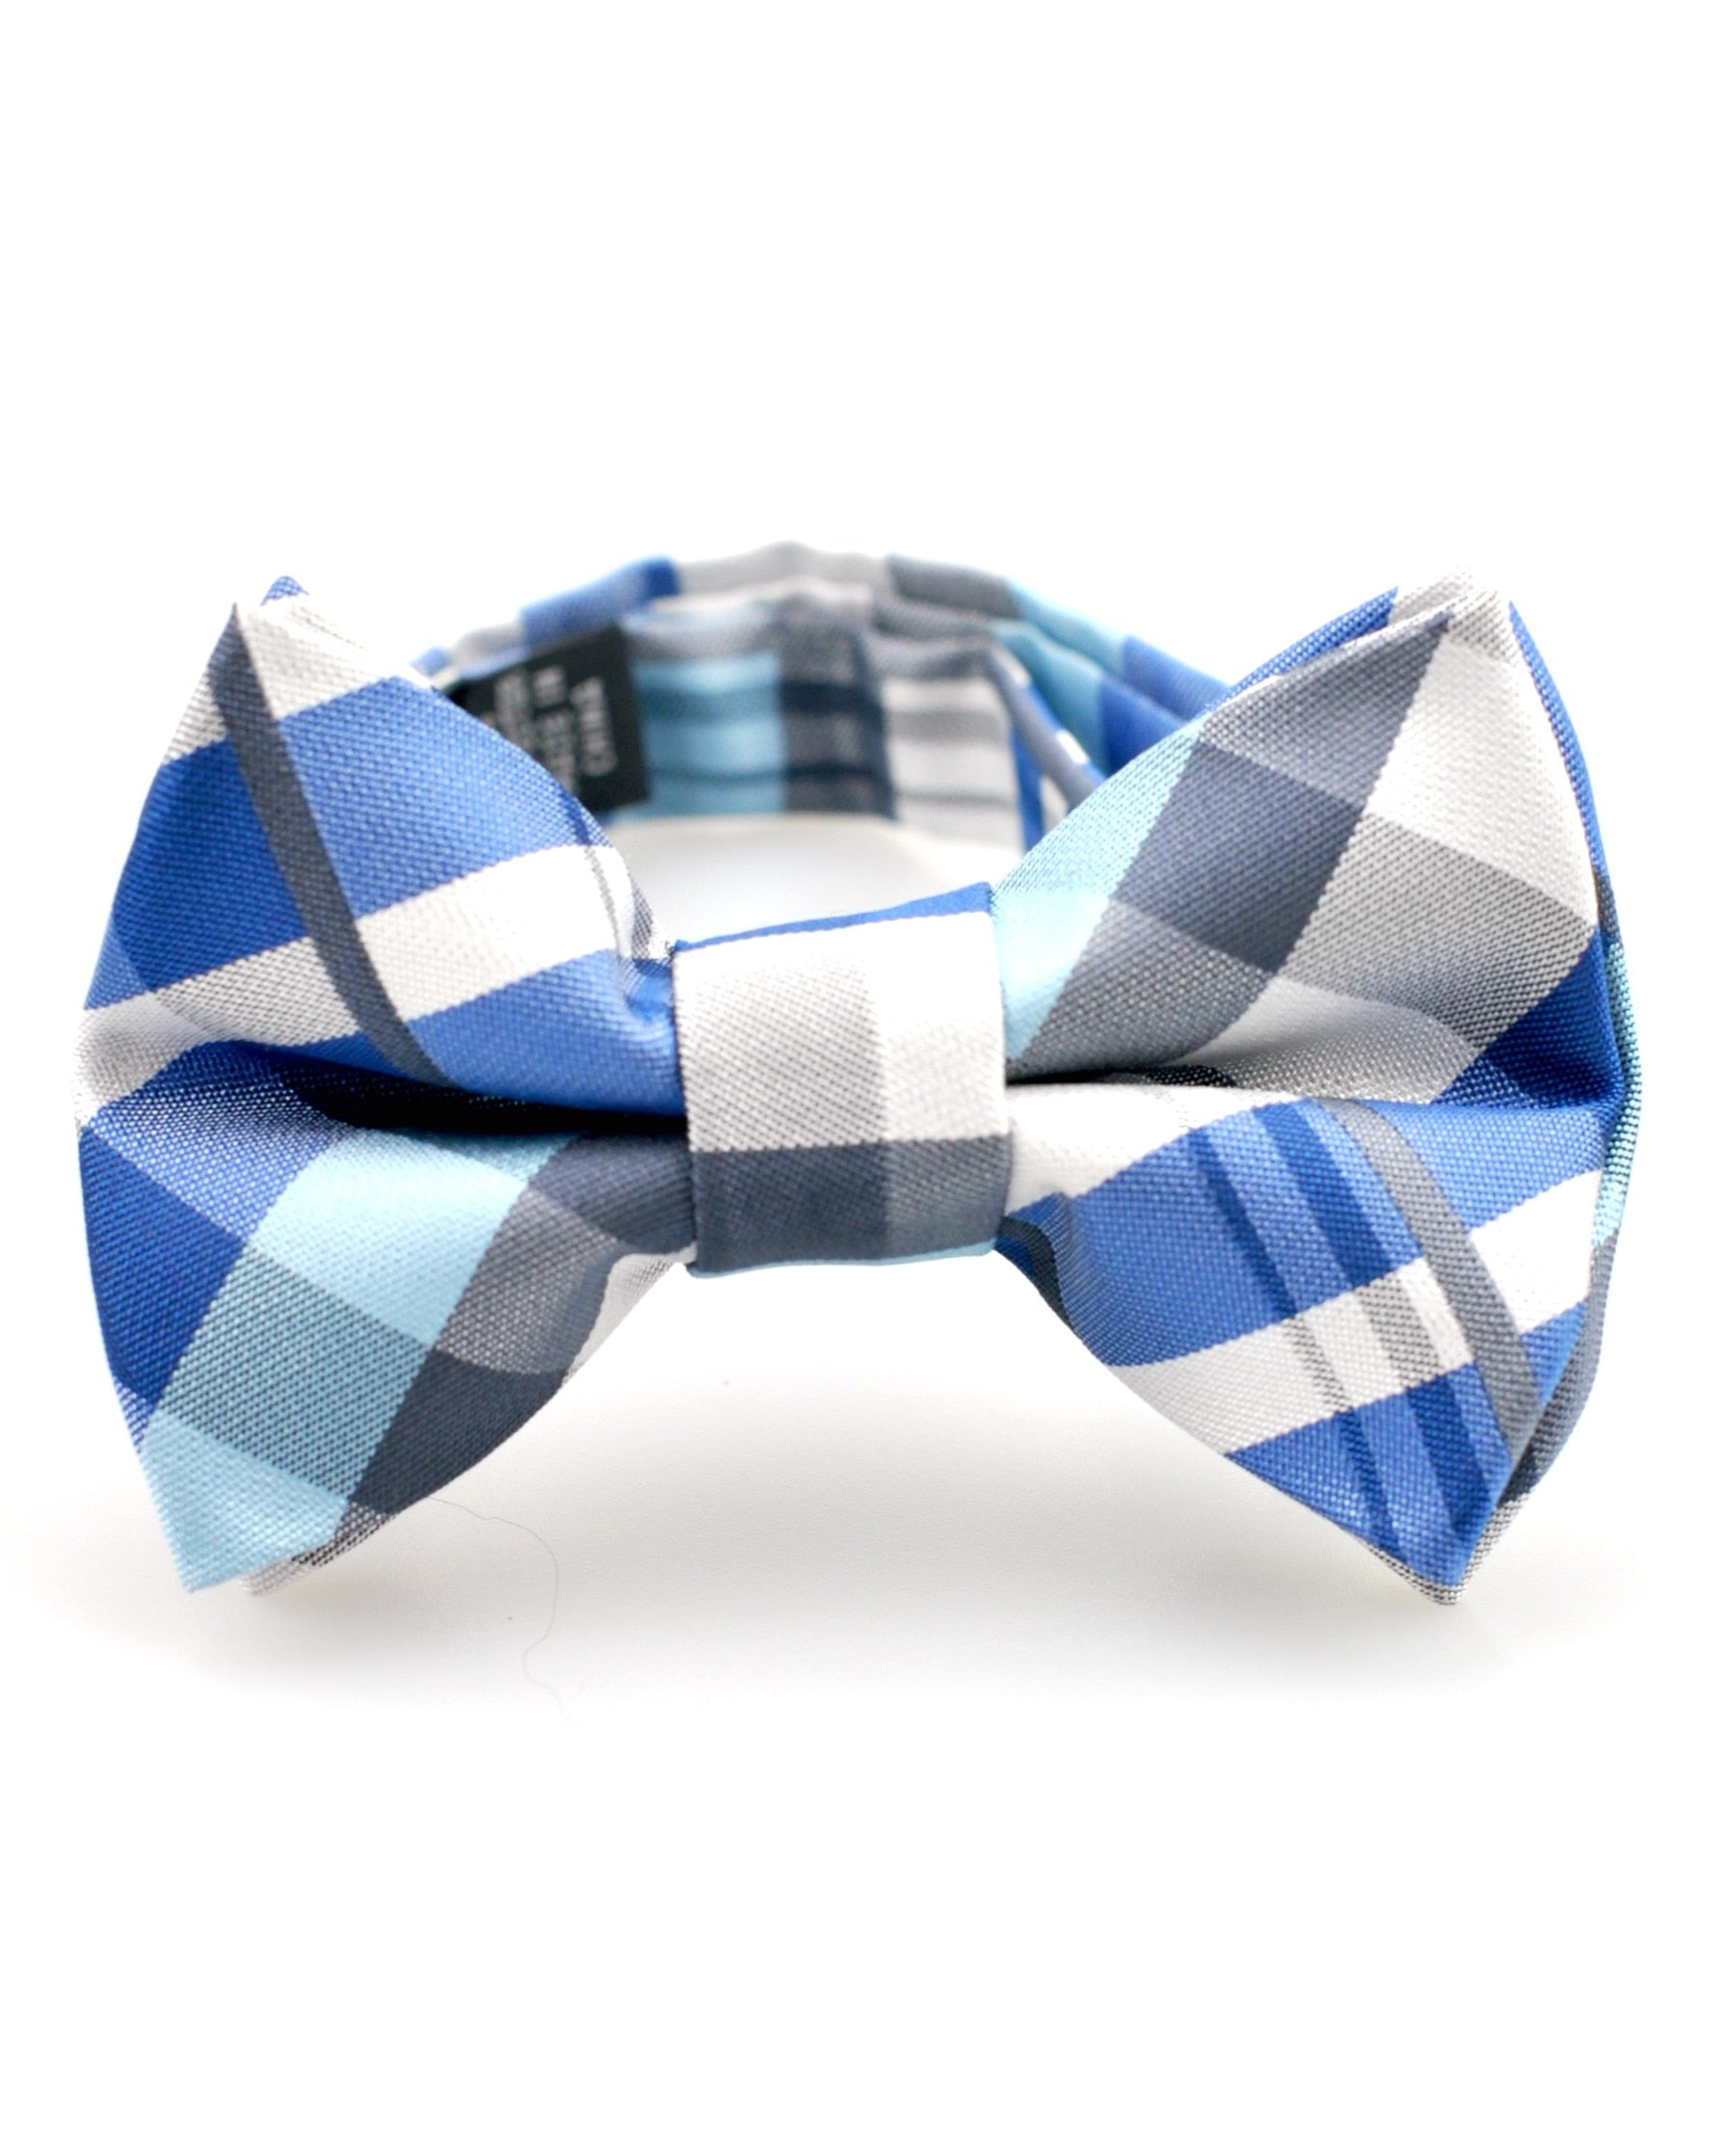 cobalt-and-sky-plaid-bow-tie.jpg